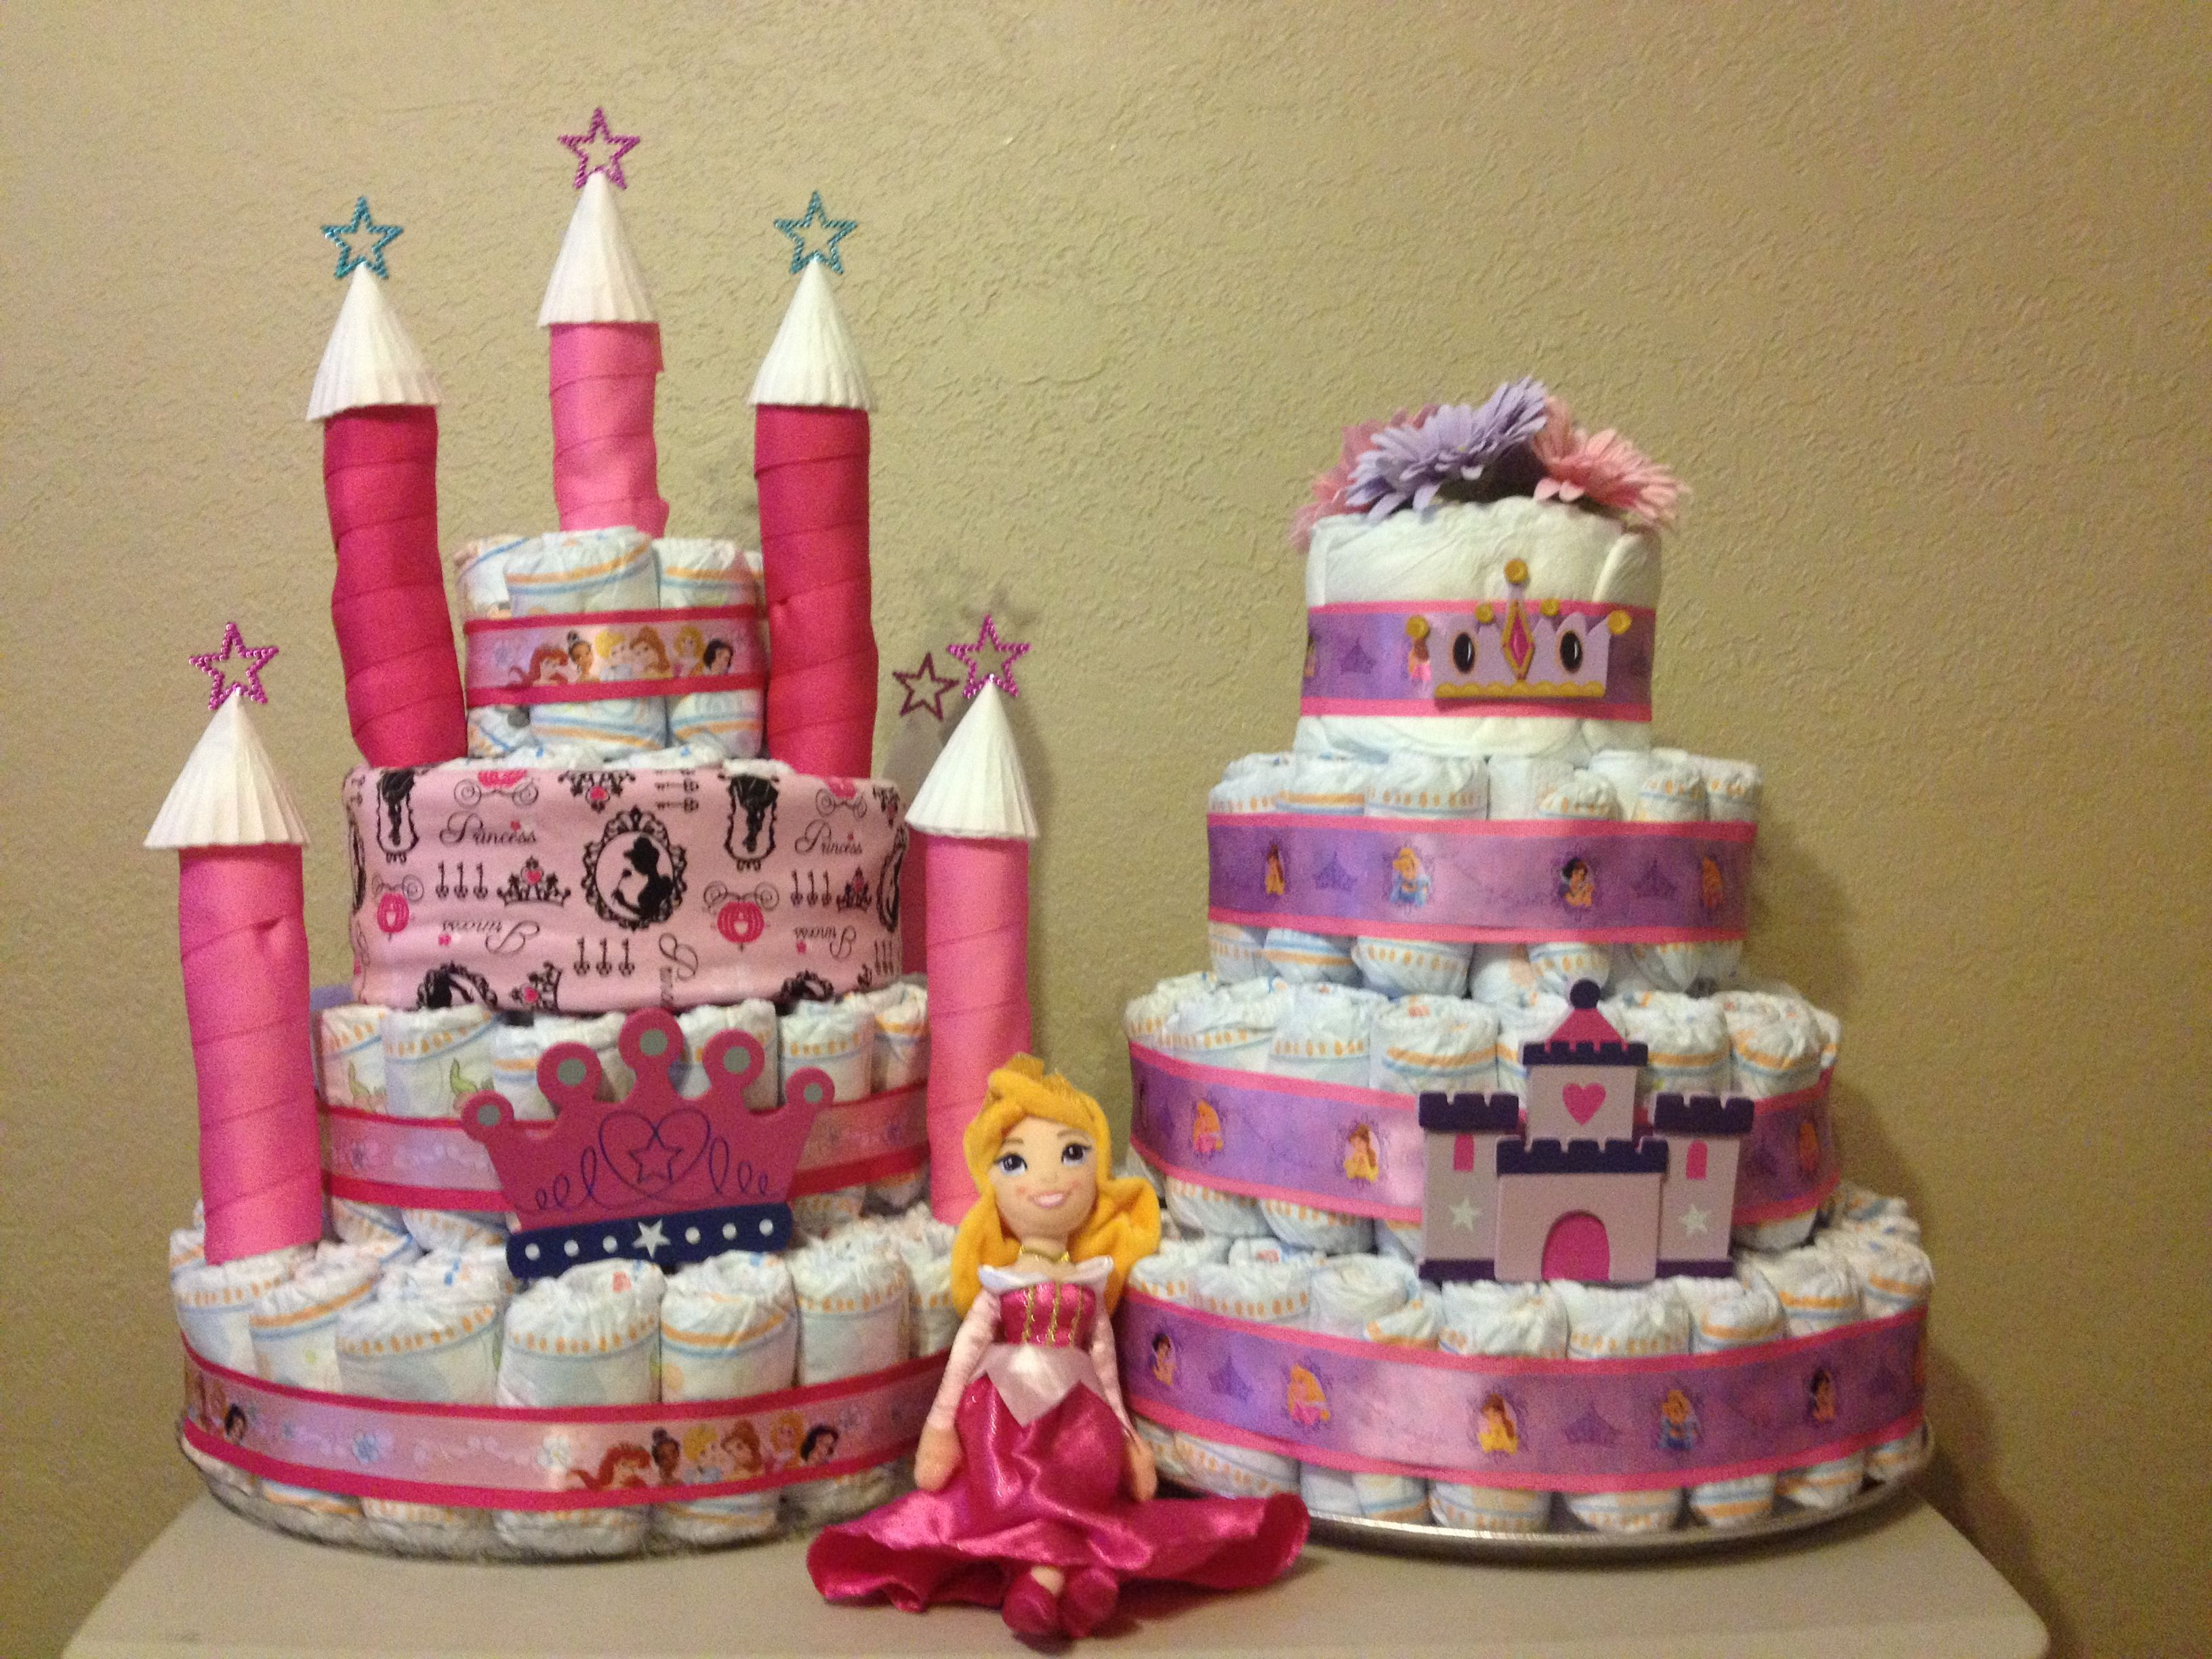 Awesome Princess Baby Showers · Here Are The Two Diaper Cakes I Made For My Niece  U0027s Disney Princess Themed